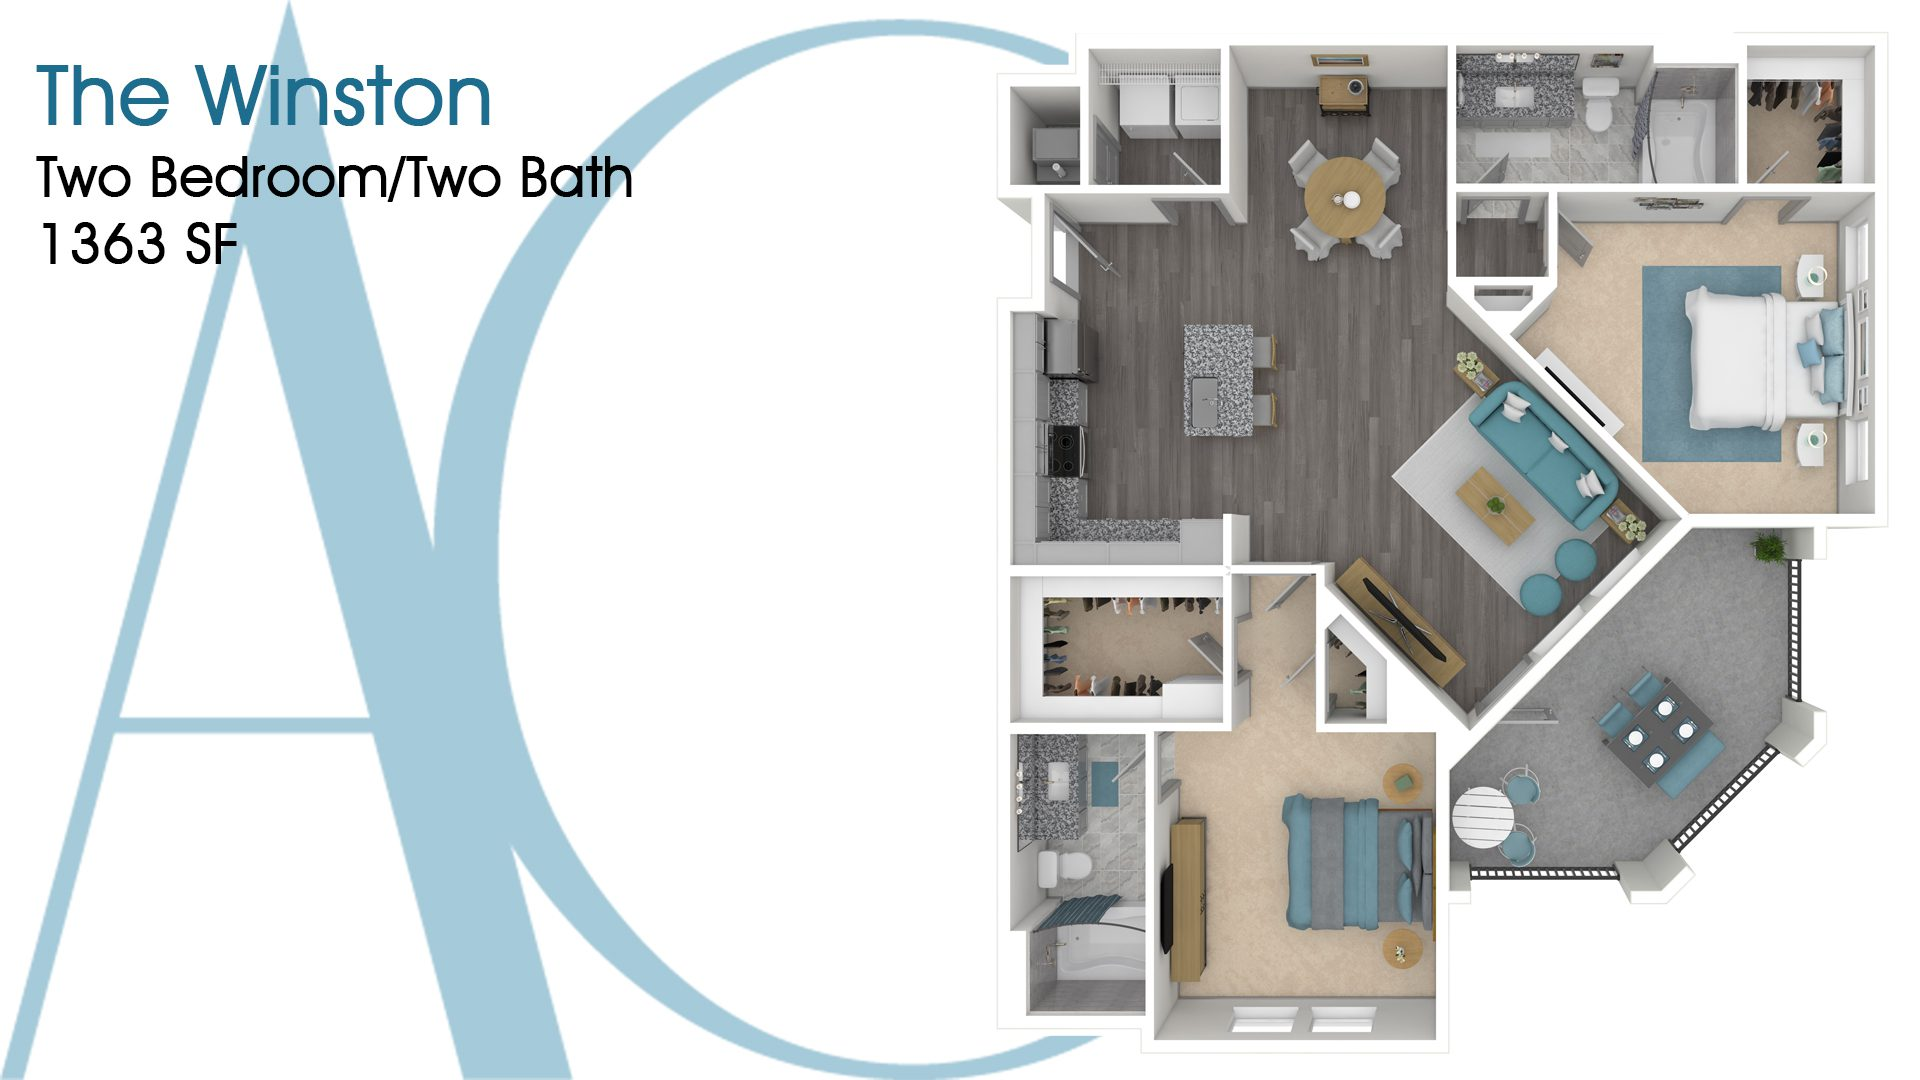 The Winston—Two-Bedroom/Two-Bath Apartment—1363 SQ. FT.